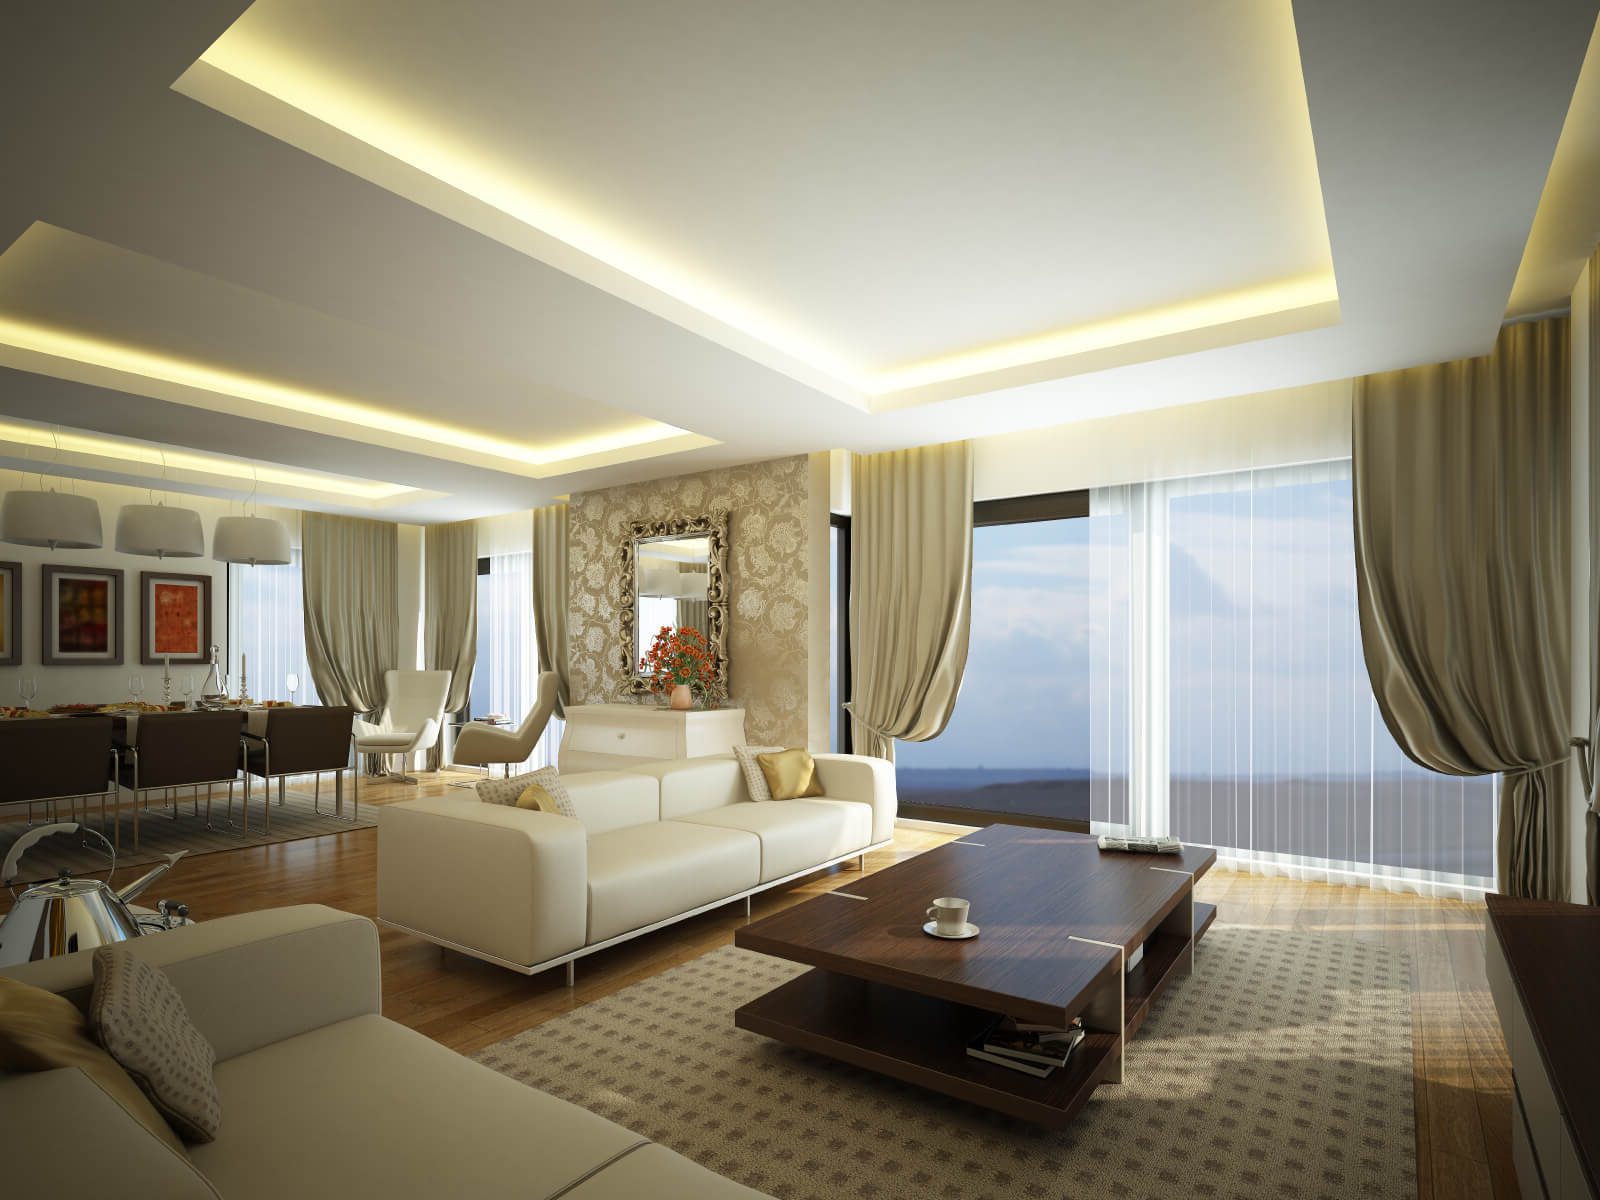 Living room lighting ideas on a budget roy home design for Ceiling lights for living room